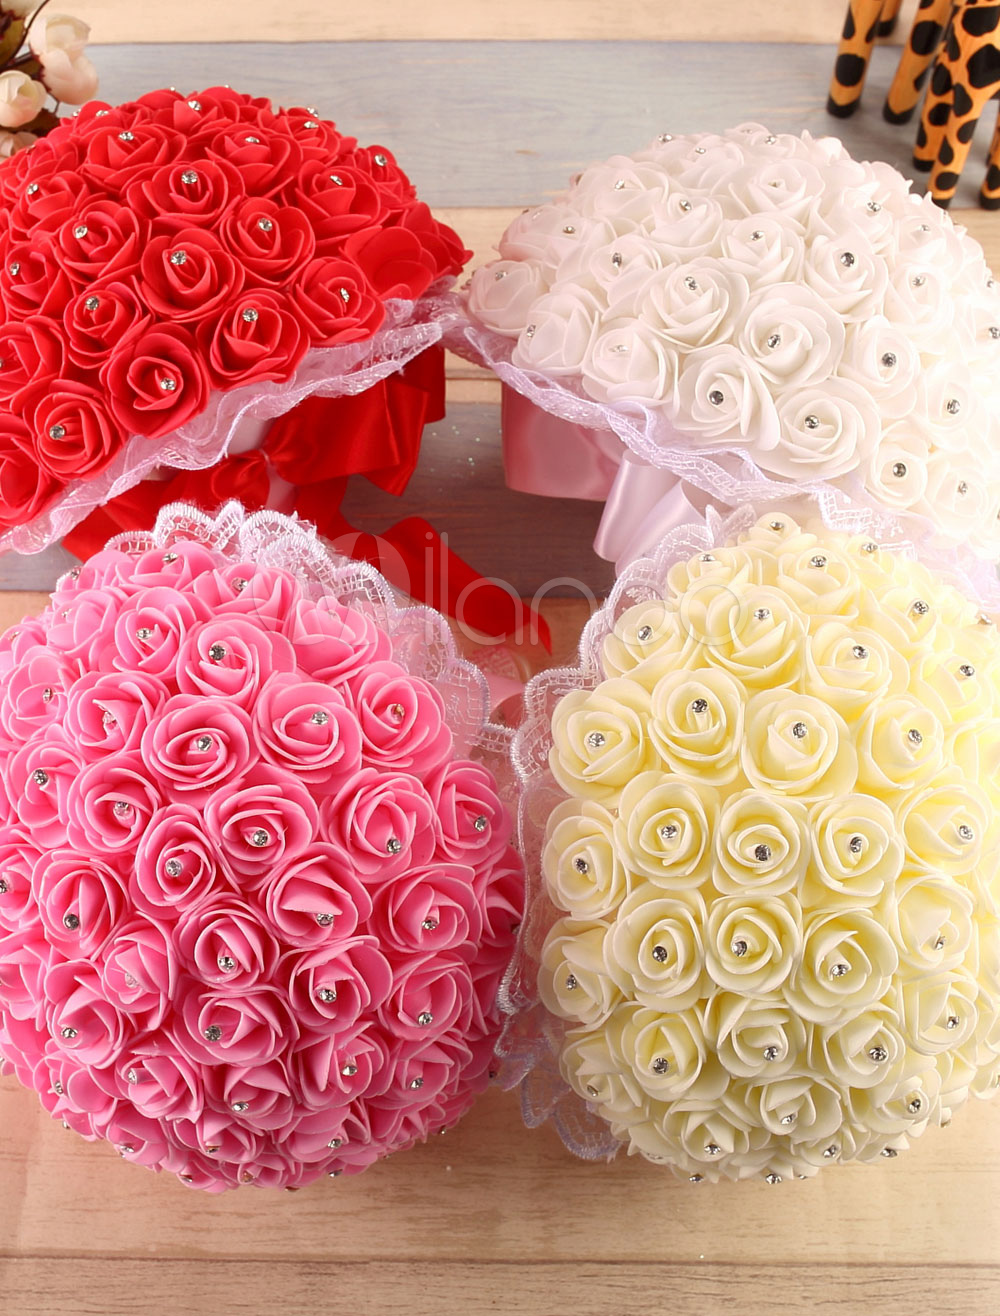 Bridal Wedding Bouquet Rose Rhinestones Satin Wedding Flower Party Hand-tied ( 26 Cm X 22 Cm)